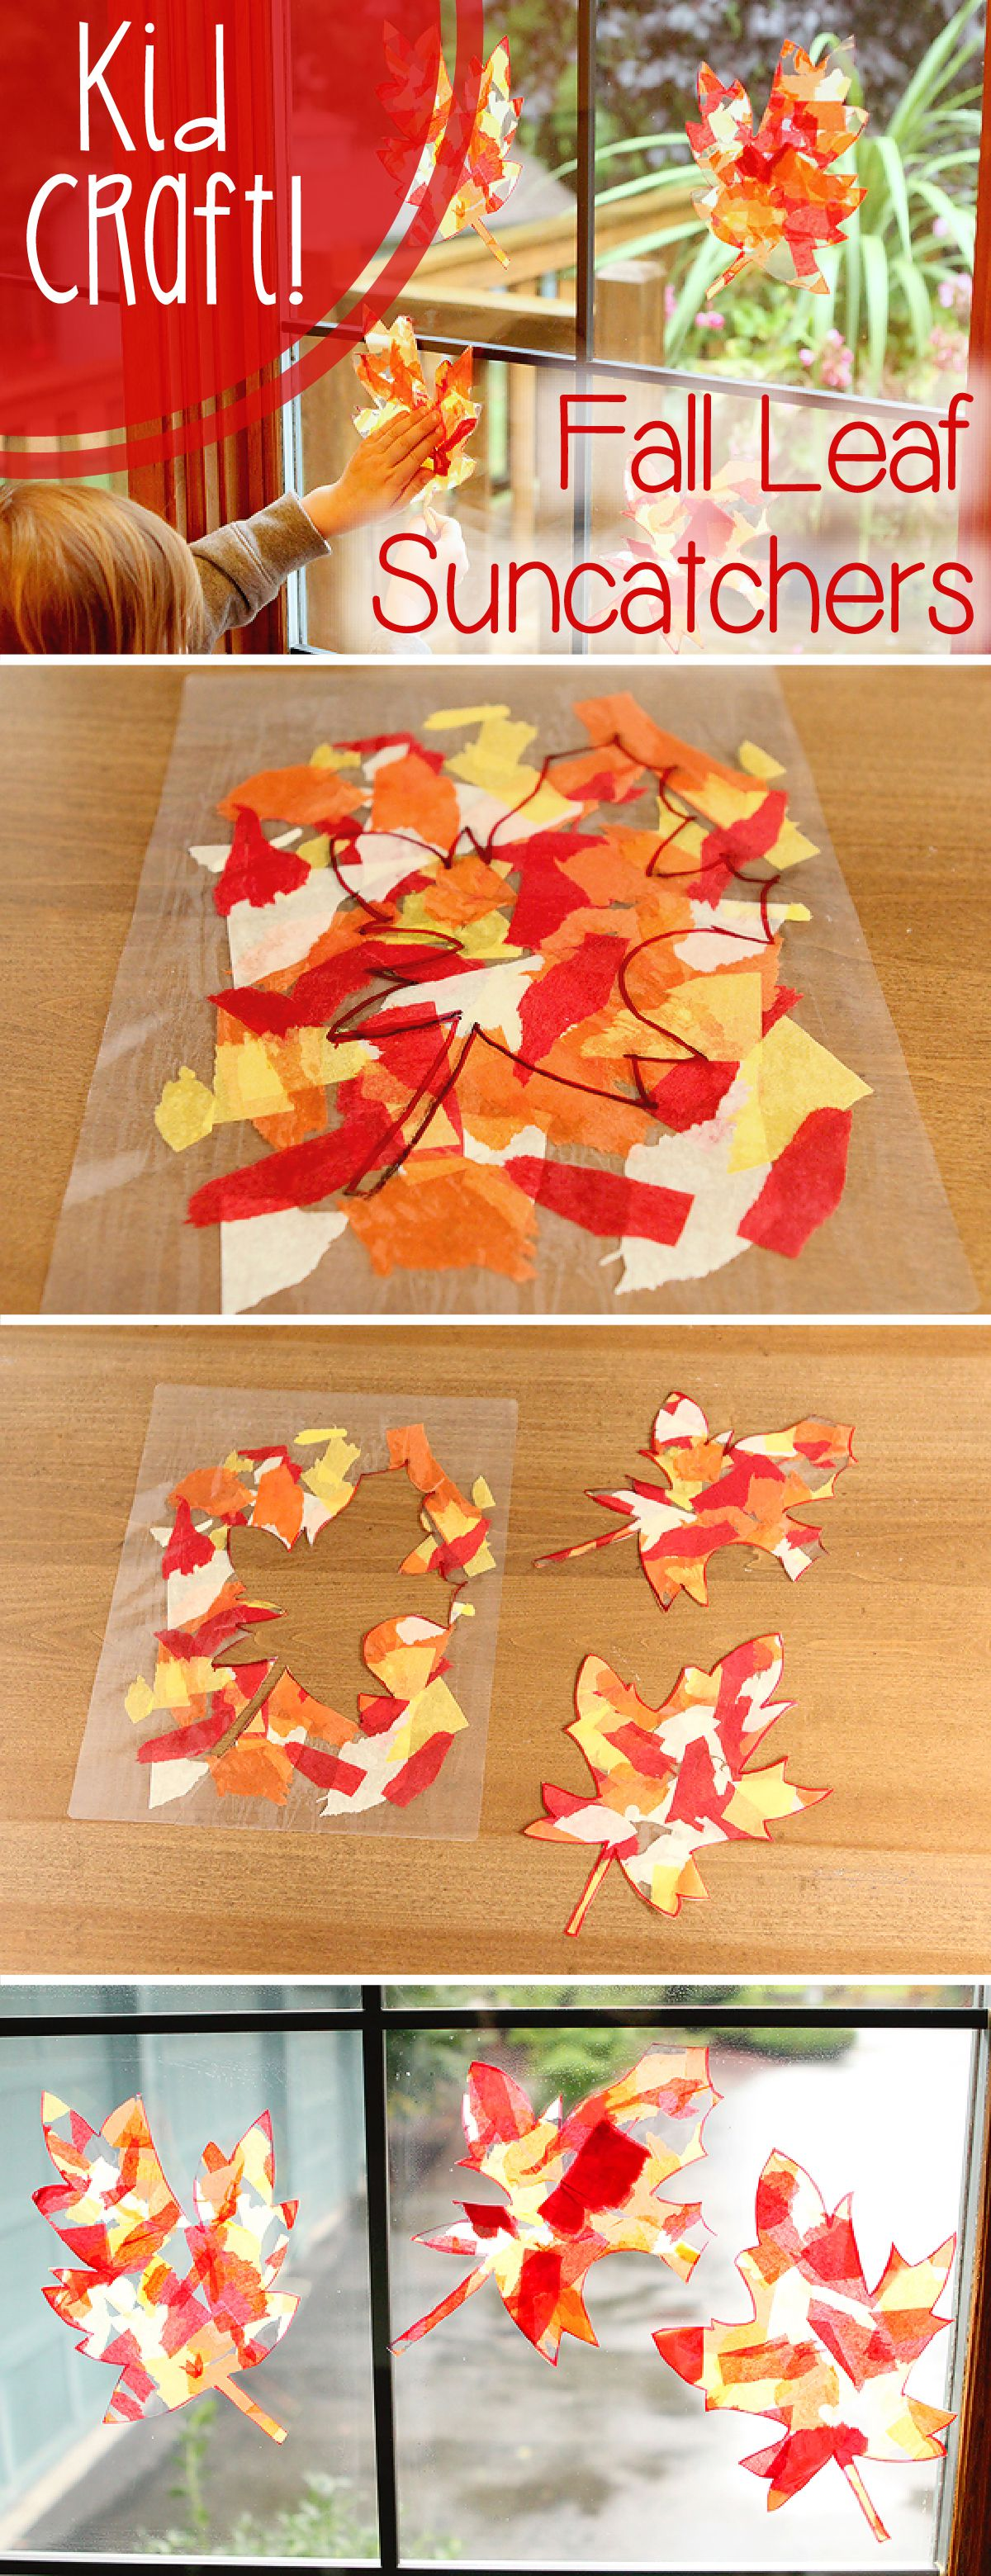 LOVE This Craft! Fall Color Leaf Sun Catchers That Will Brighten Up Your  Home While Also Being A Fun Craft For The Kids. Glue Tissue Paper To Wax  Paper, ...